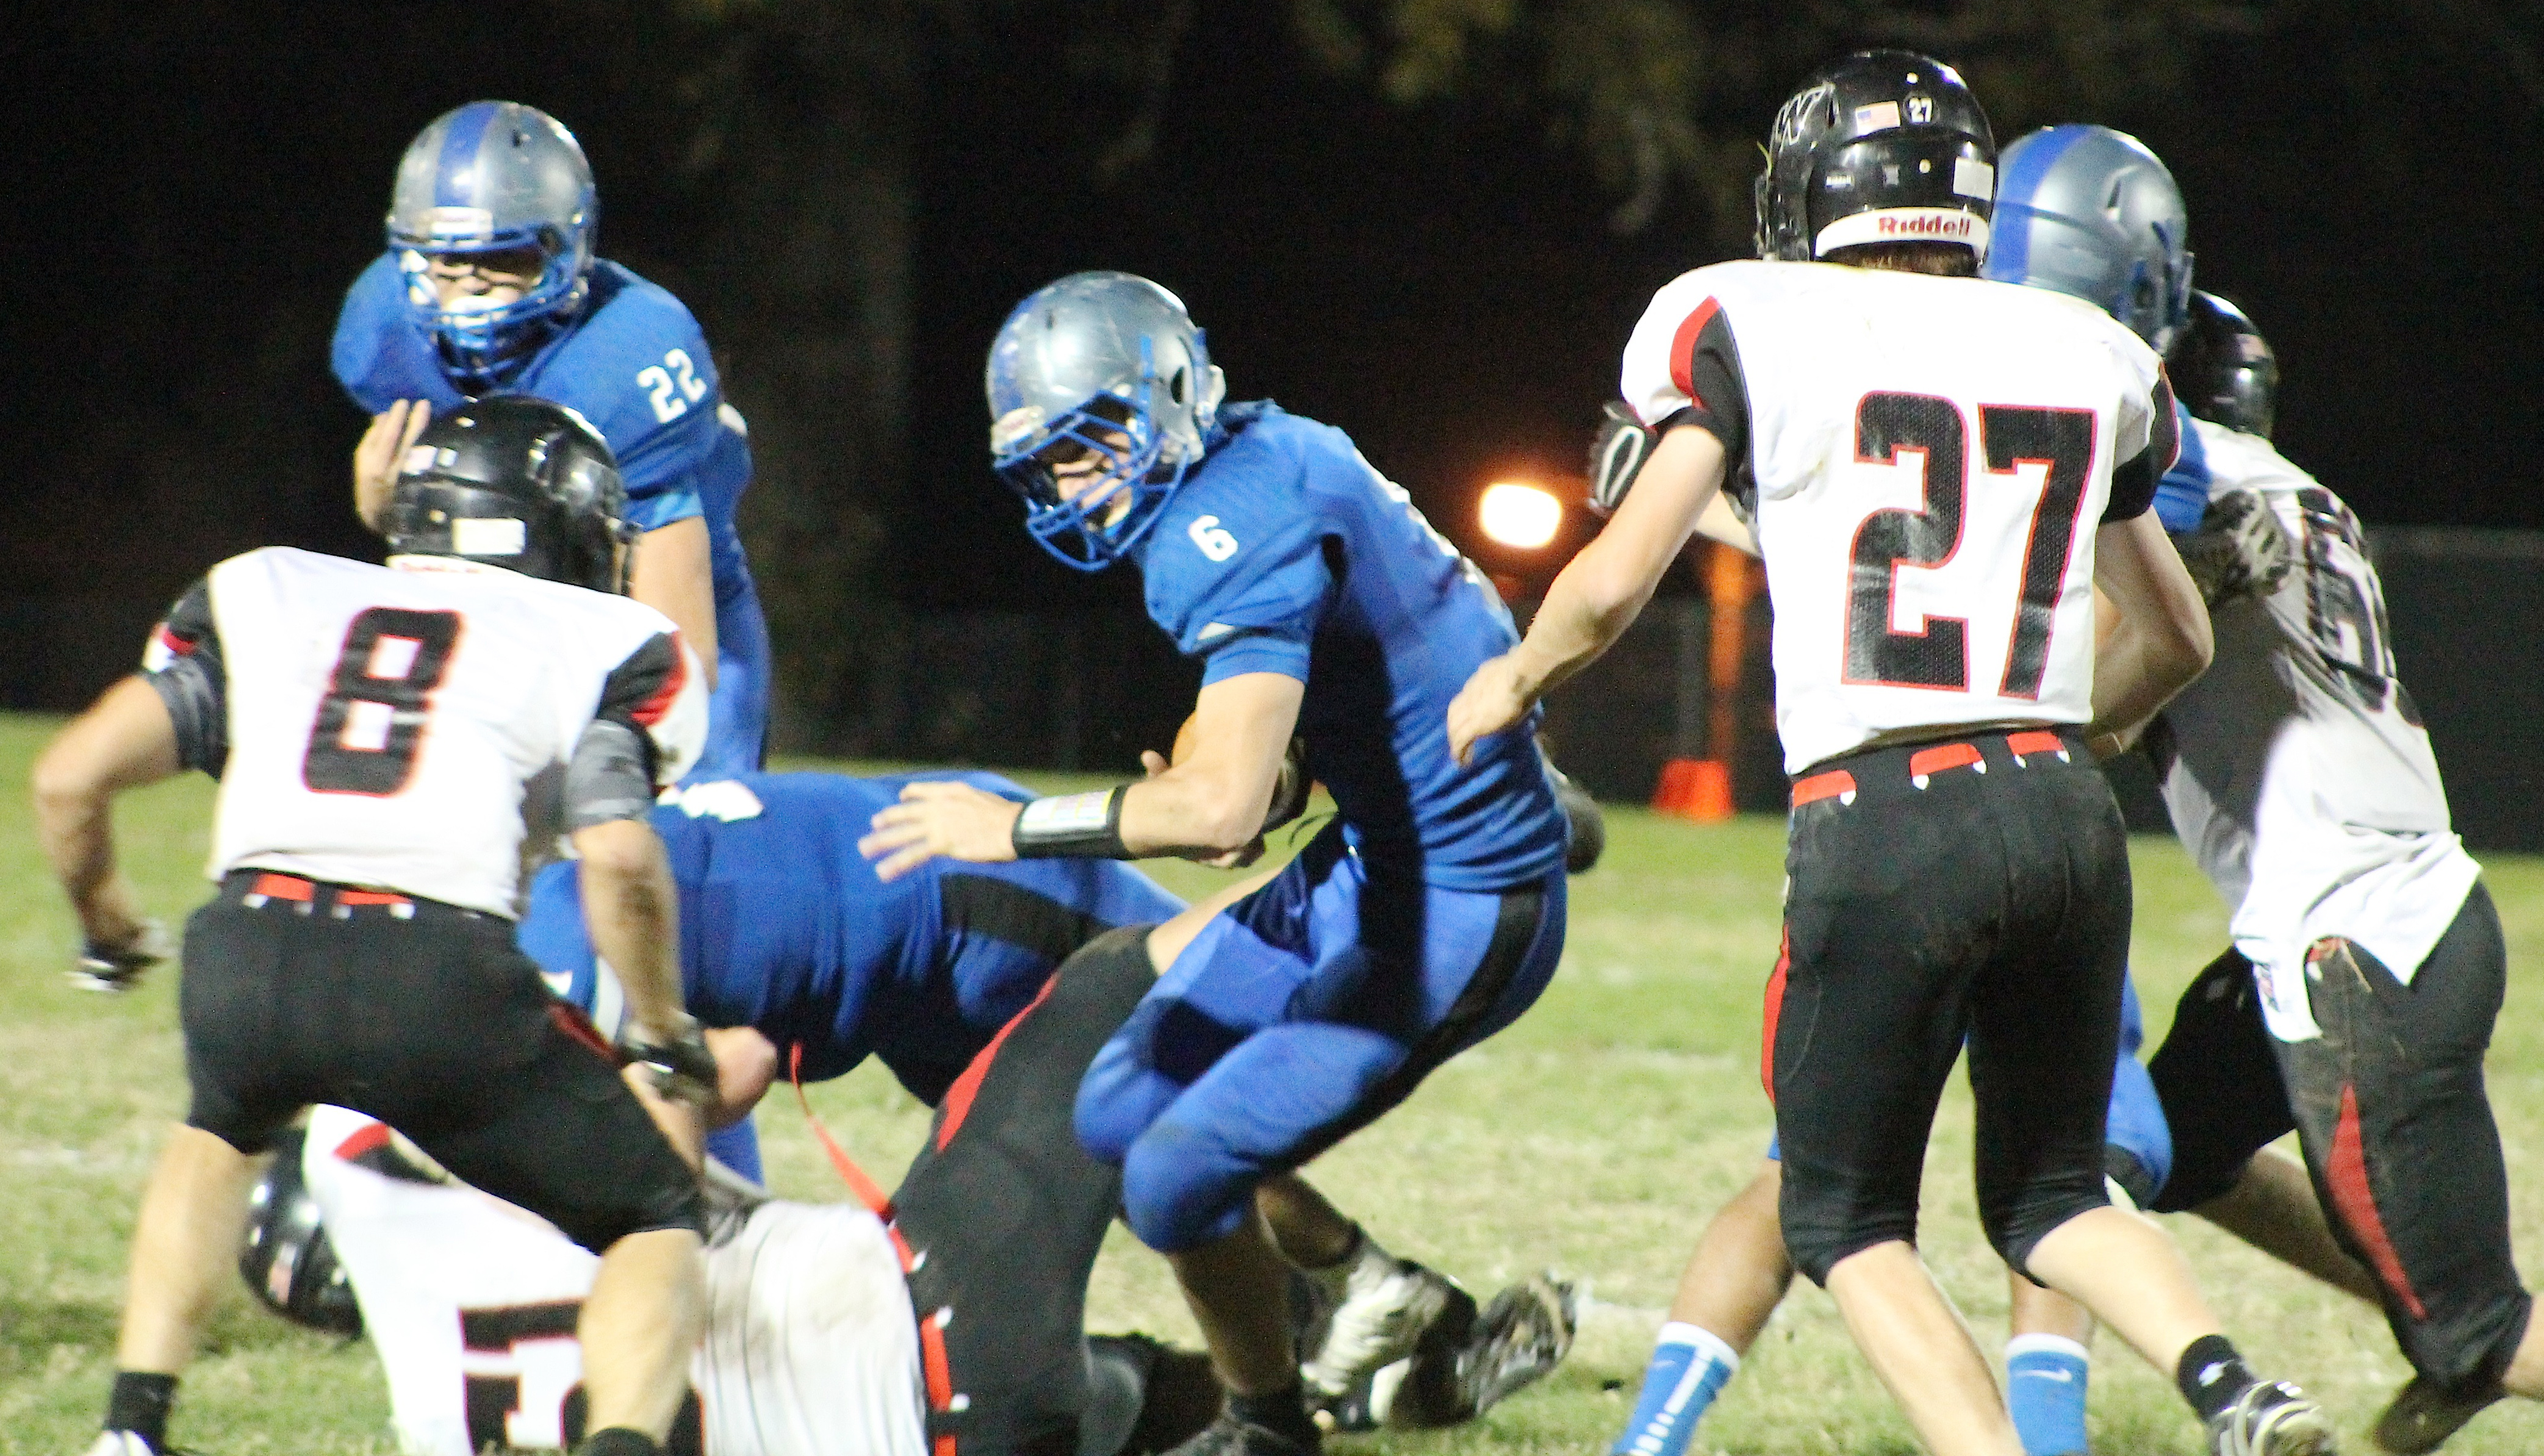 Holton's Lucas Lovvorn (middle) tries to spin free for some extra yards during first half action against Jeff West.